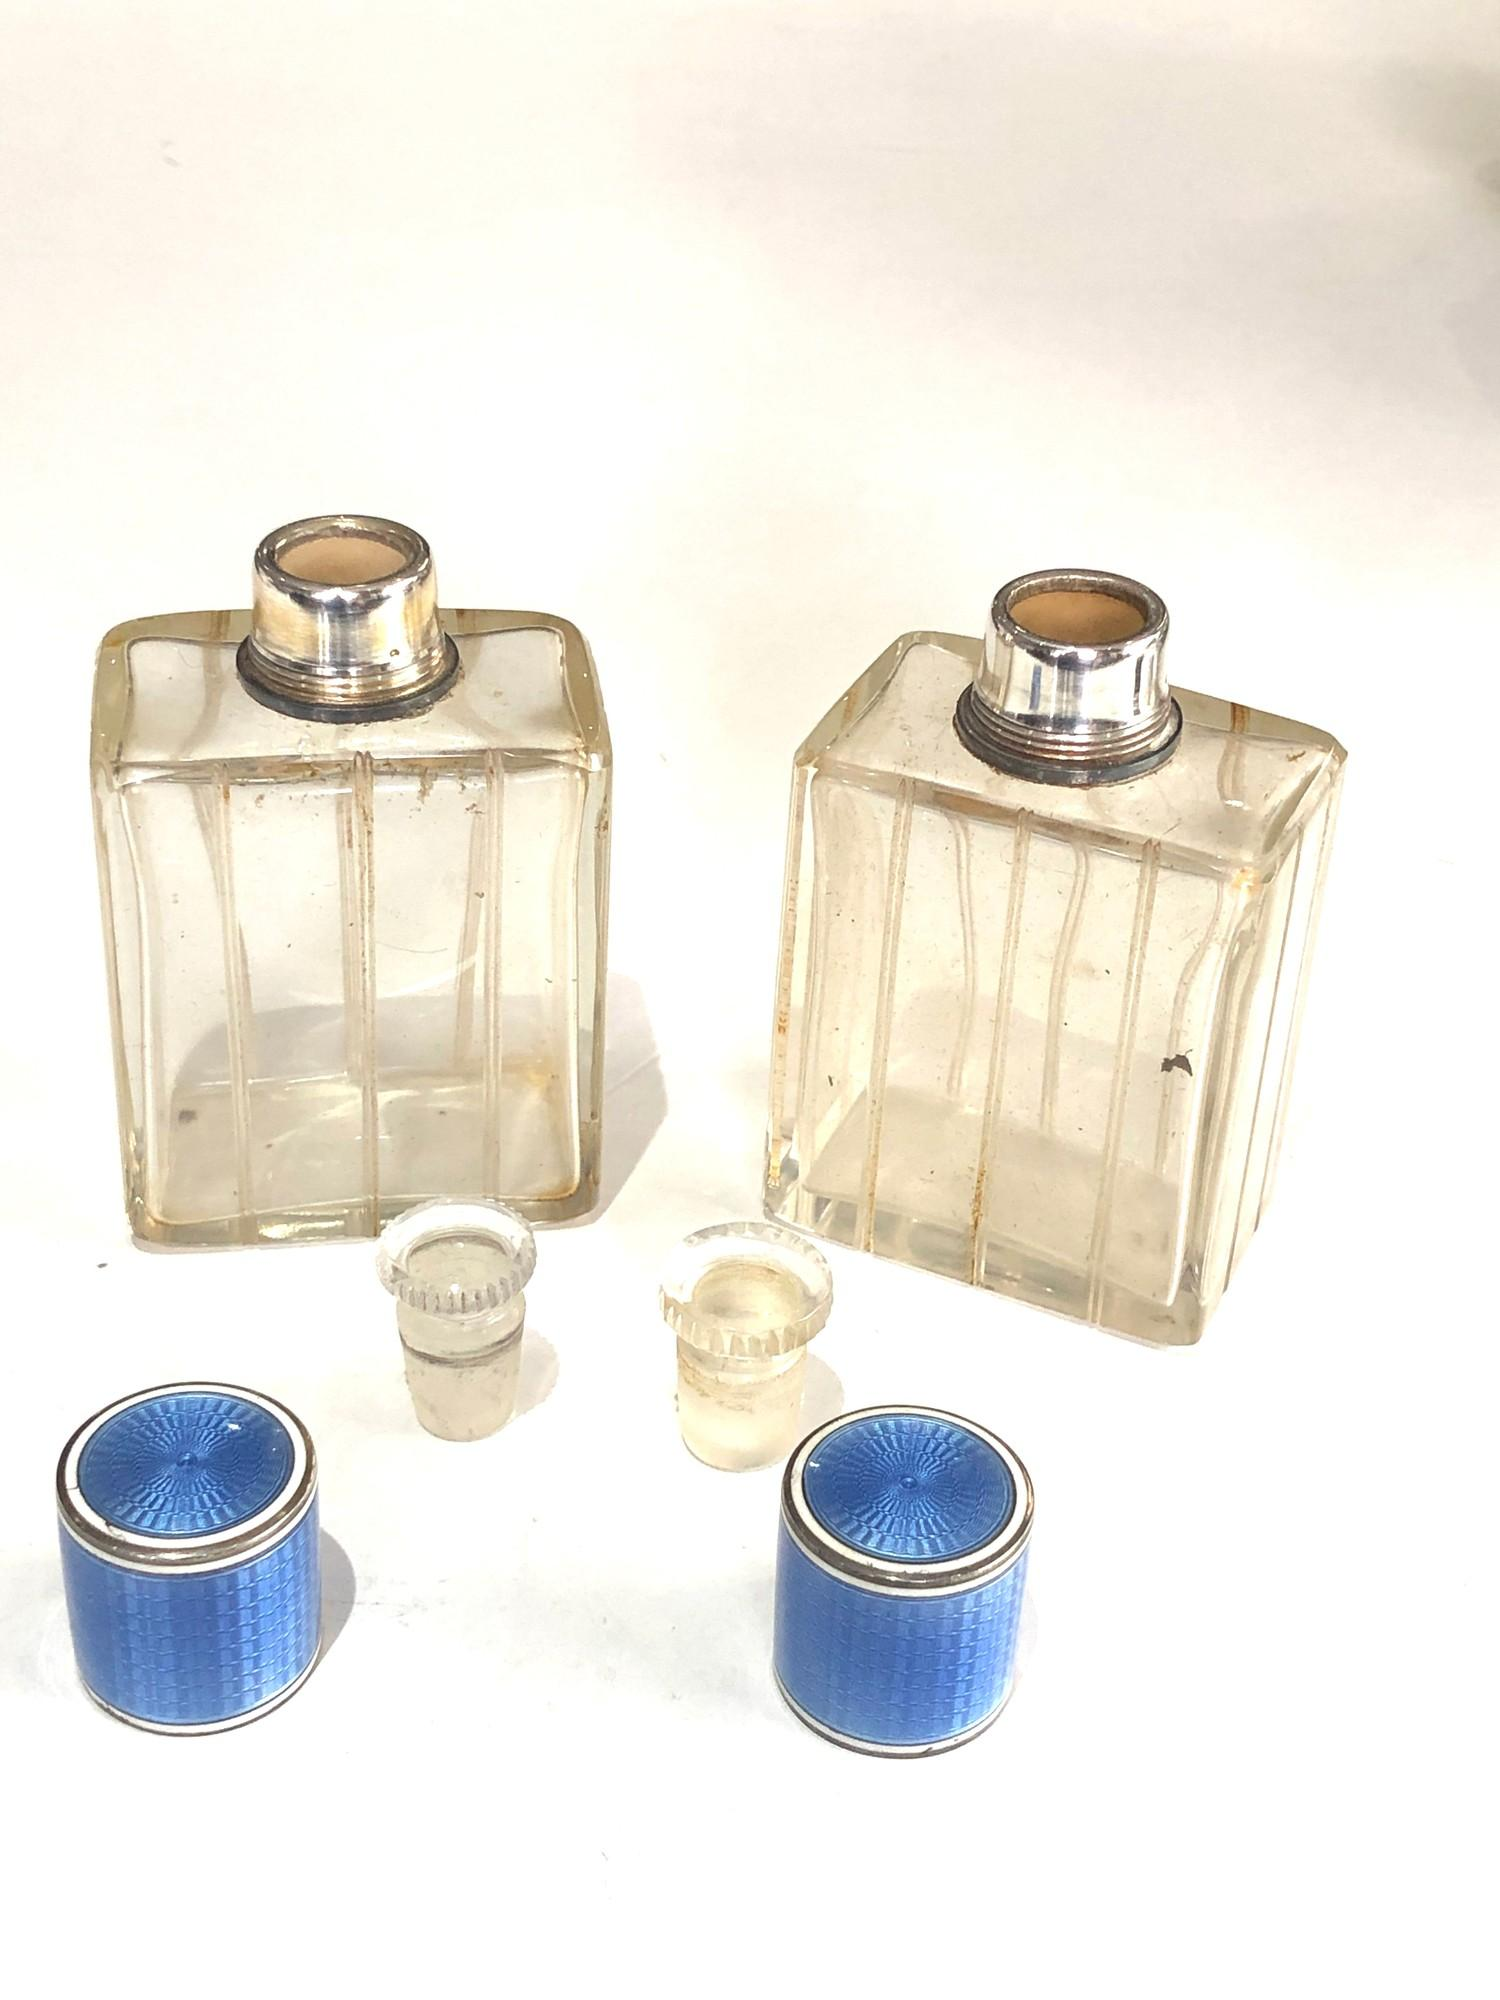 Pair of antique French silver and enamel perfume bottles complete with stoppers in good uncleaned - Image 7 of 8